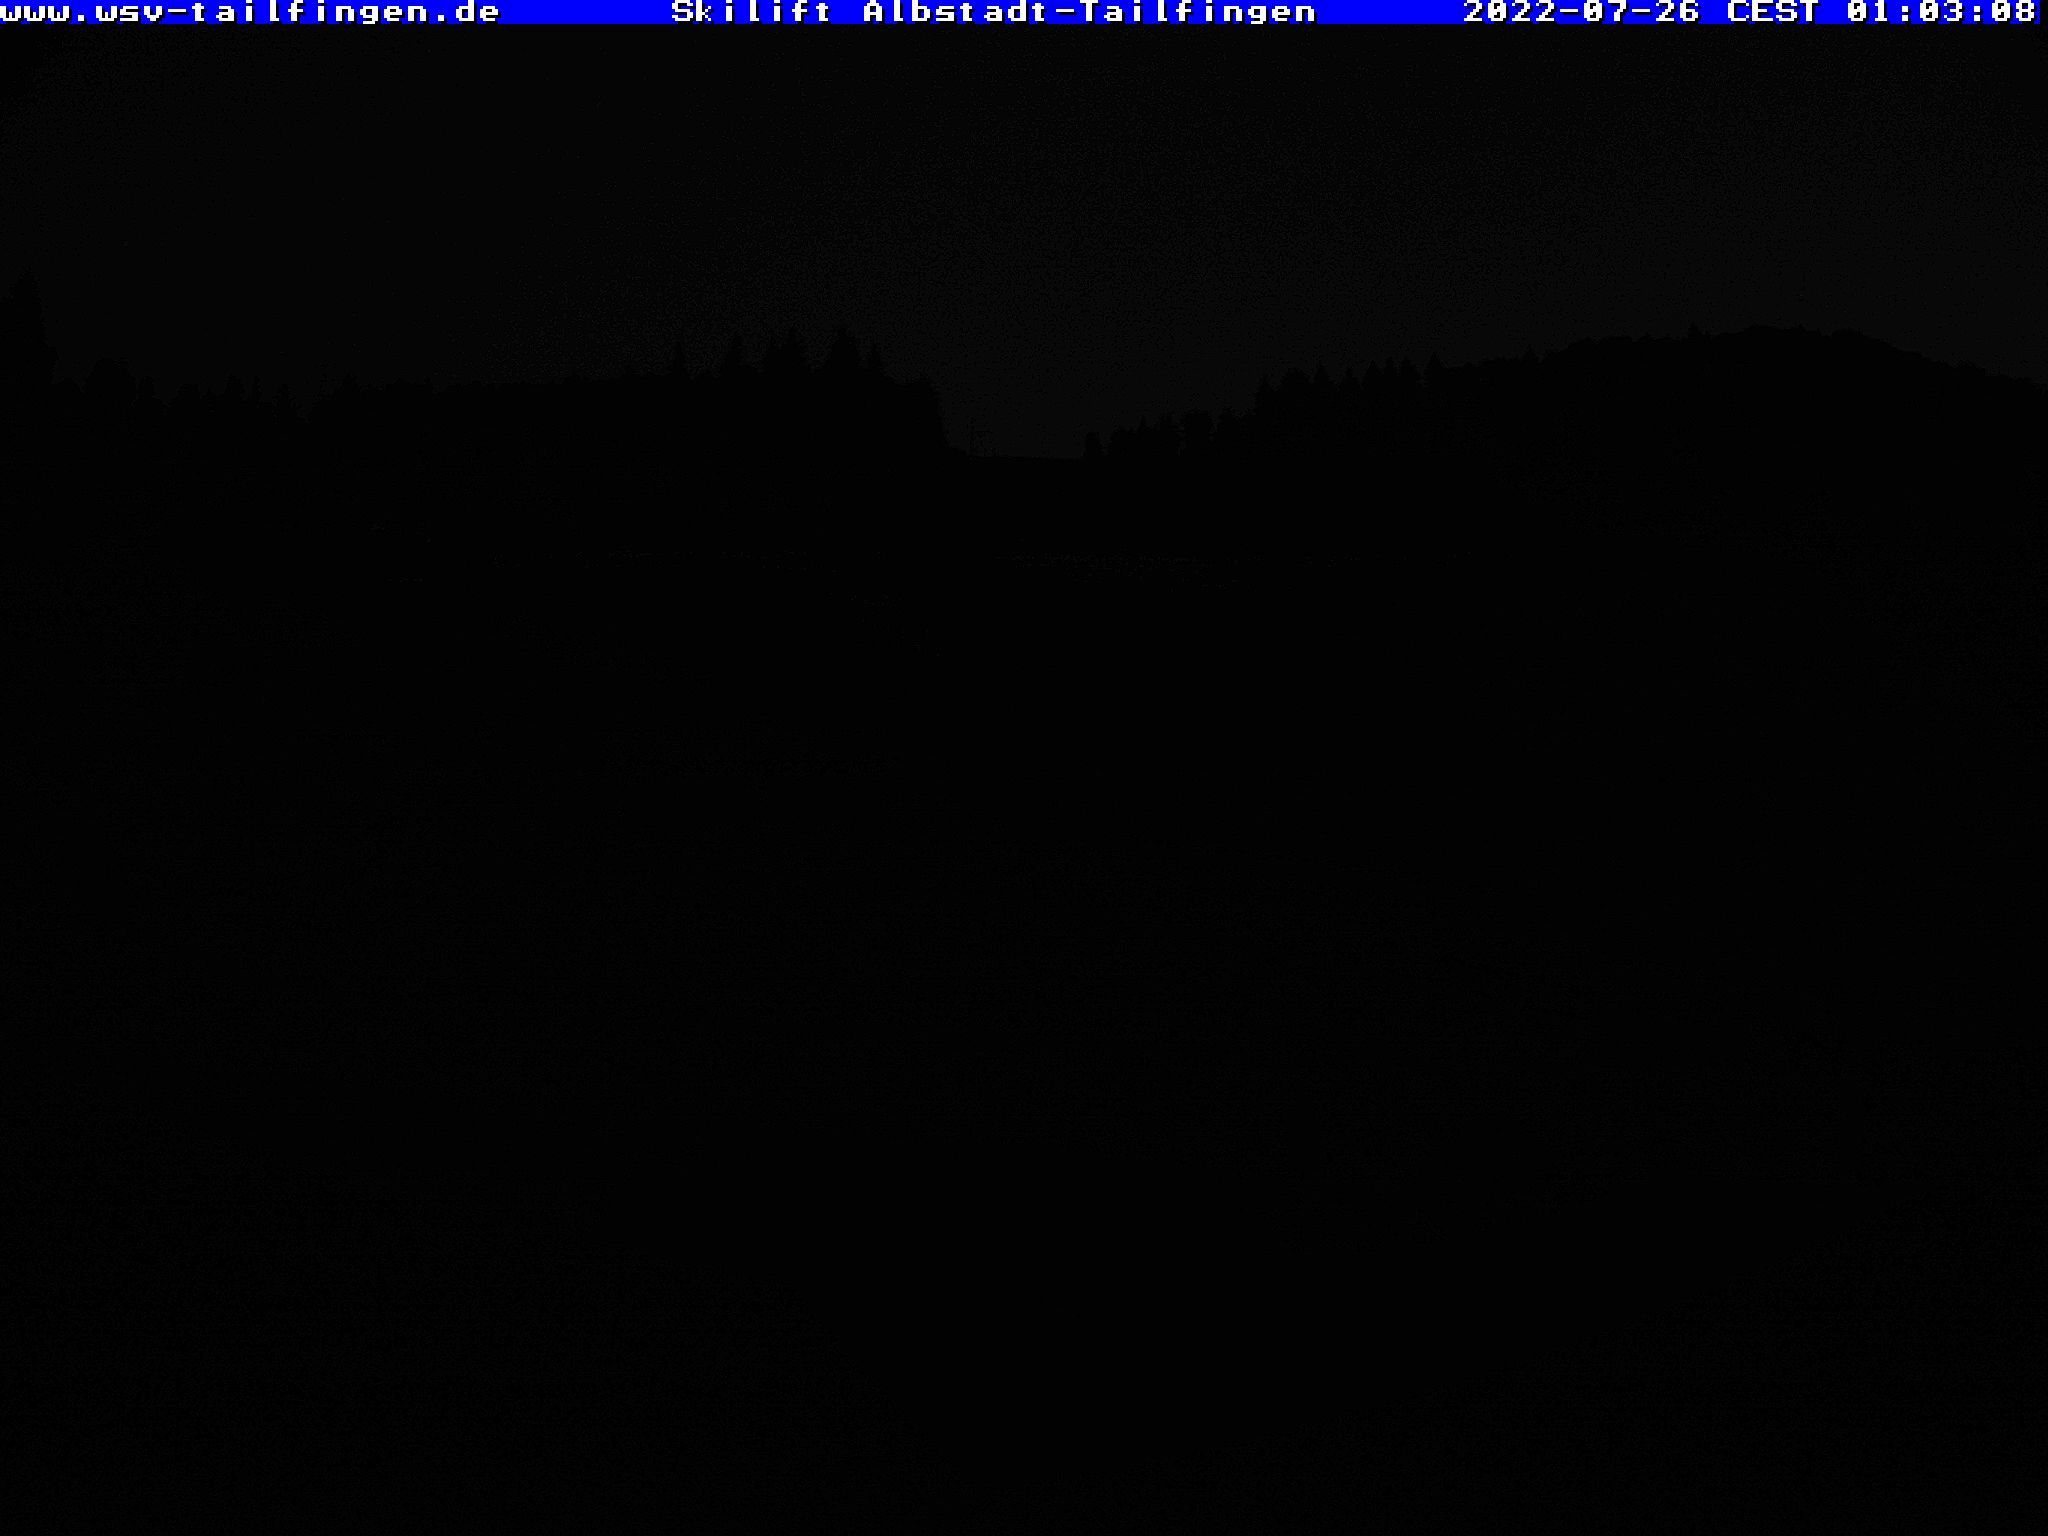 Webcams Skigebiet Albstadt - Tailfingen